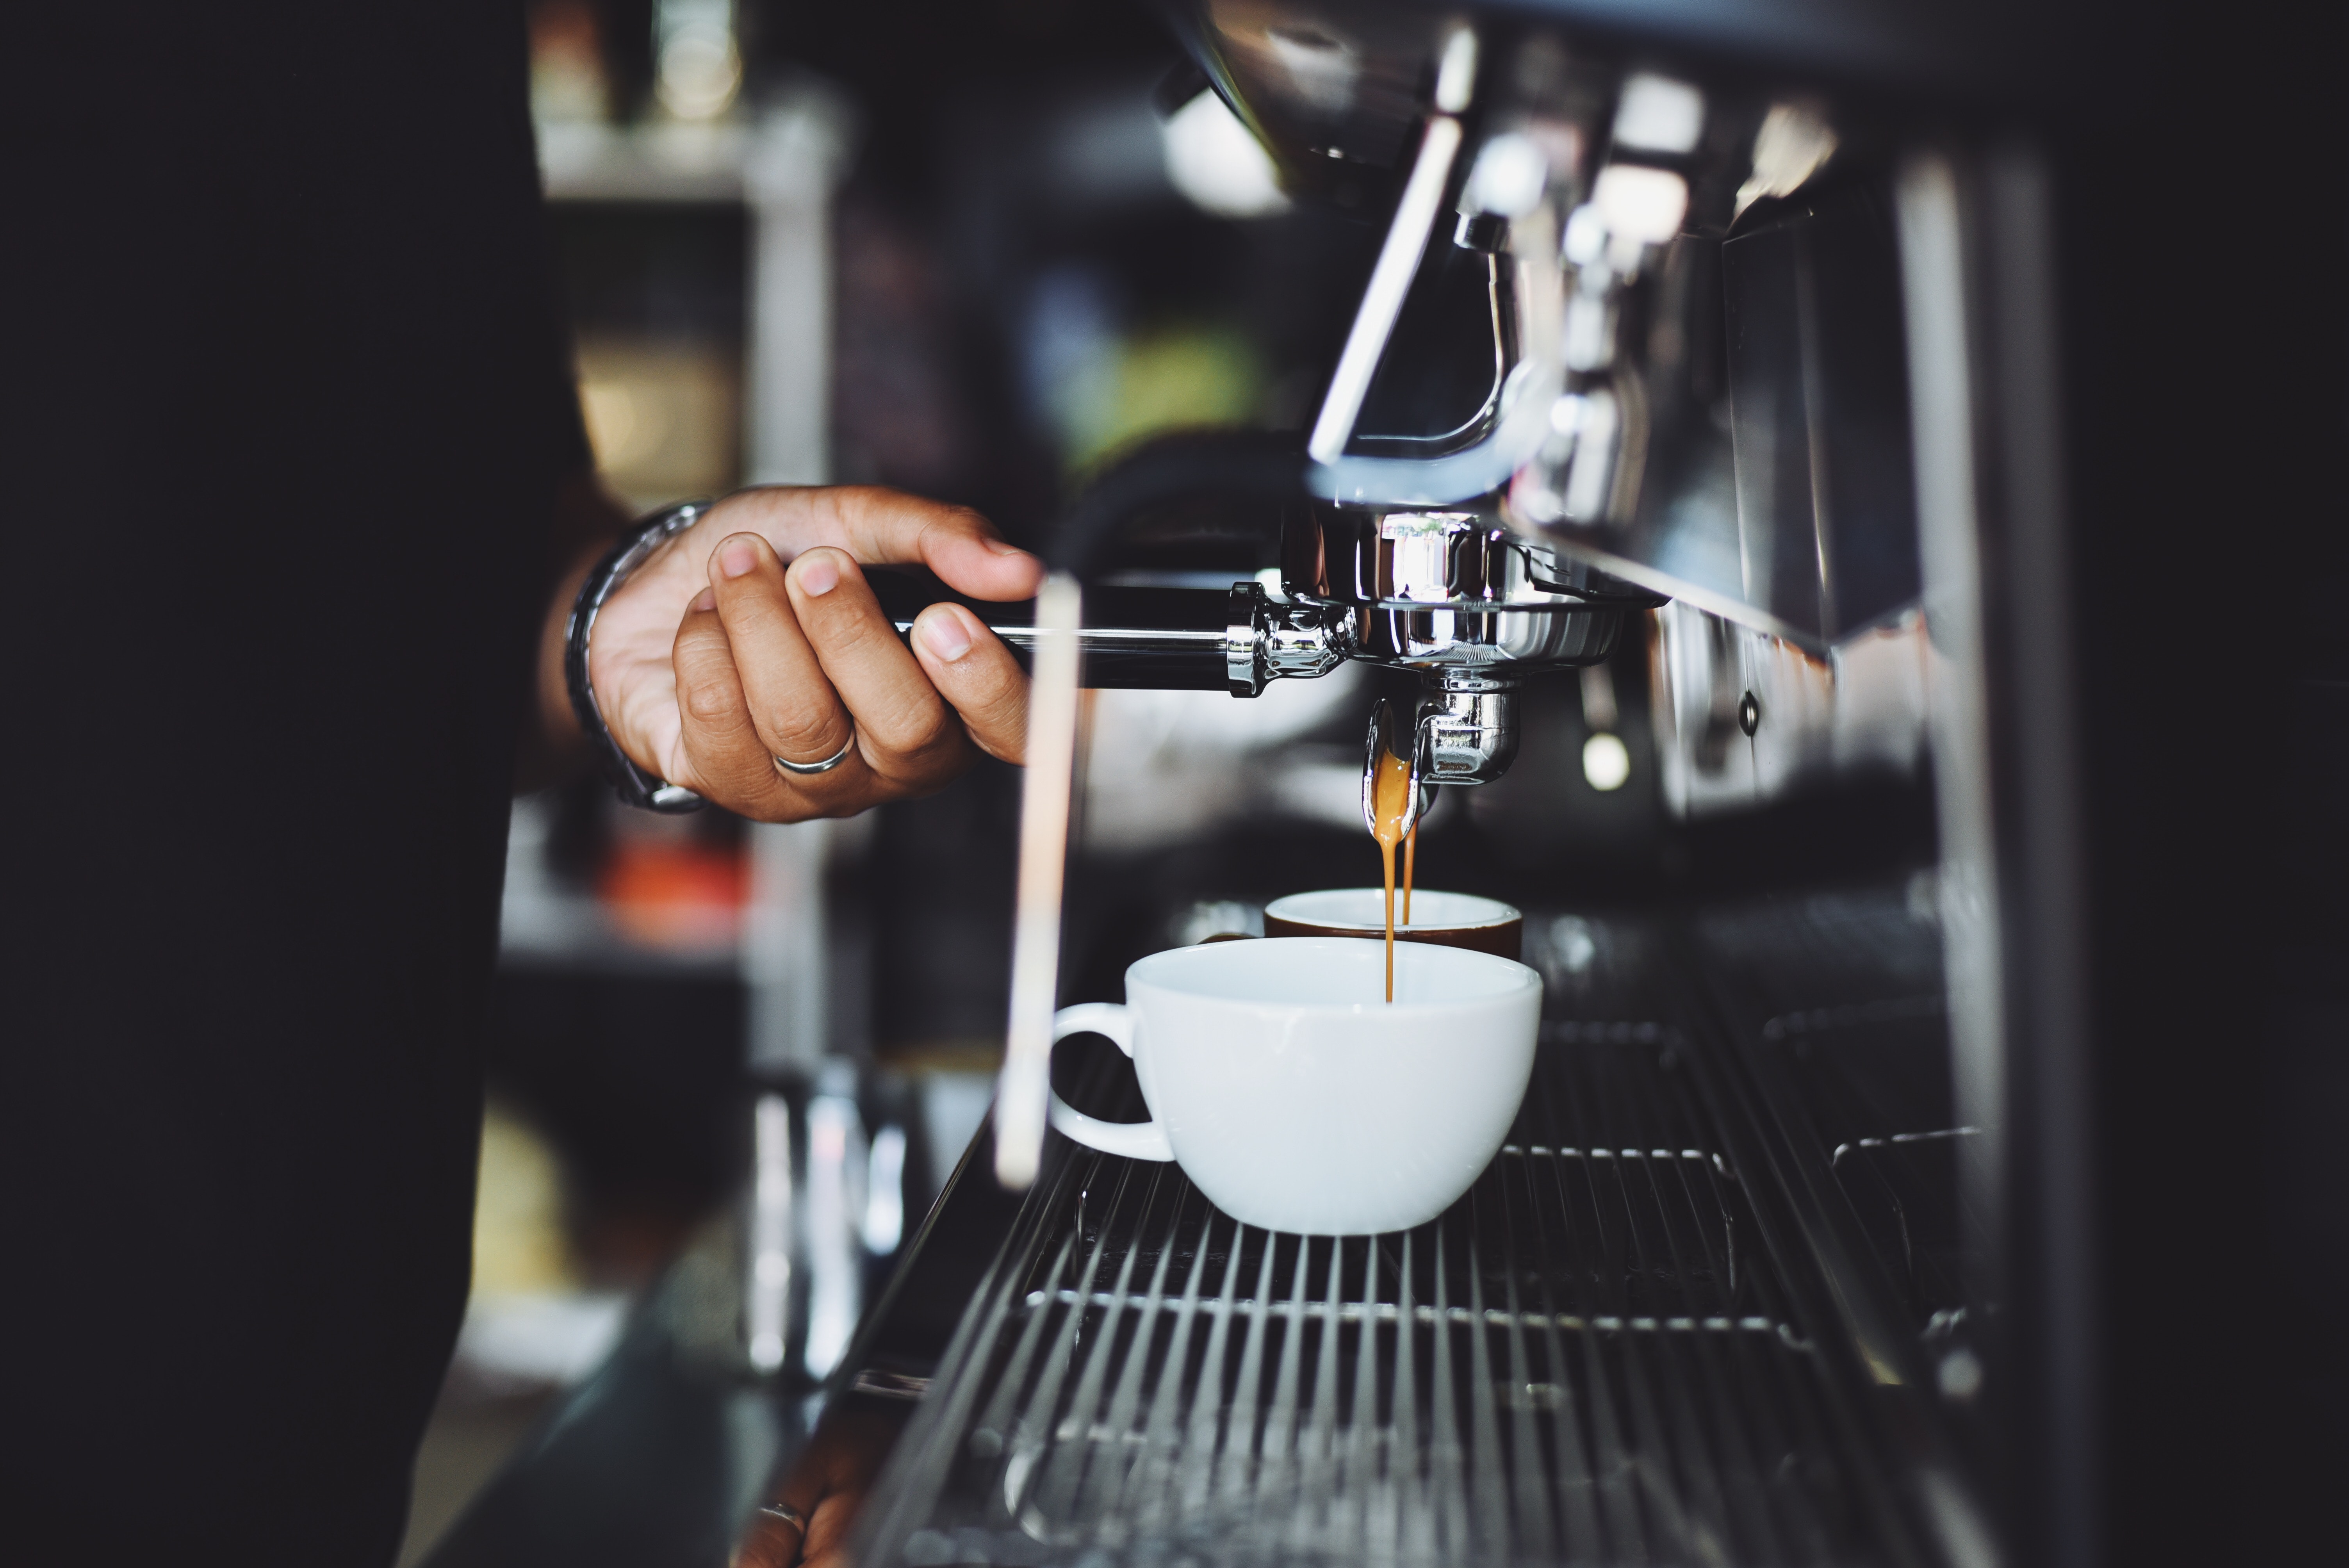 close-up-of-hand-holding-coffee-cup-302902